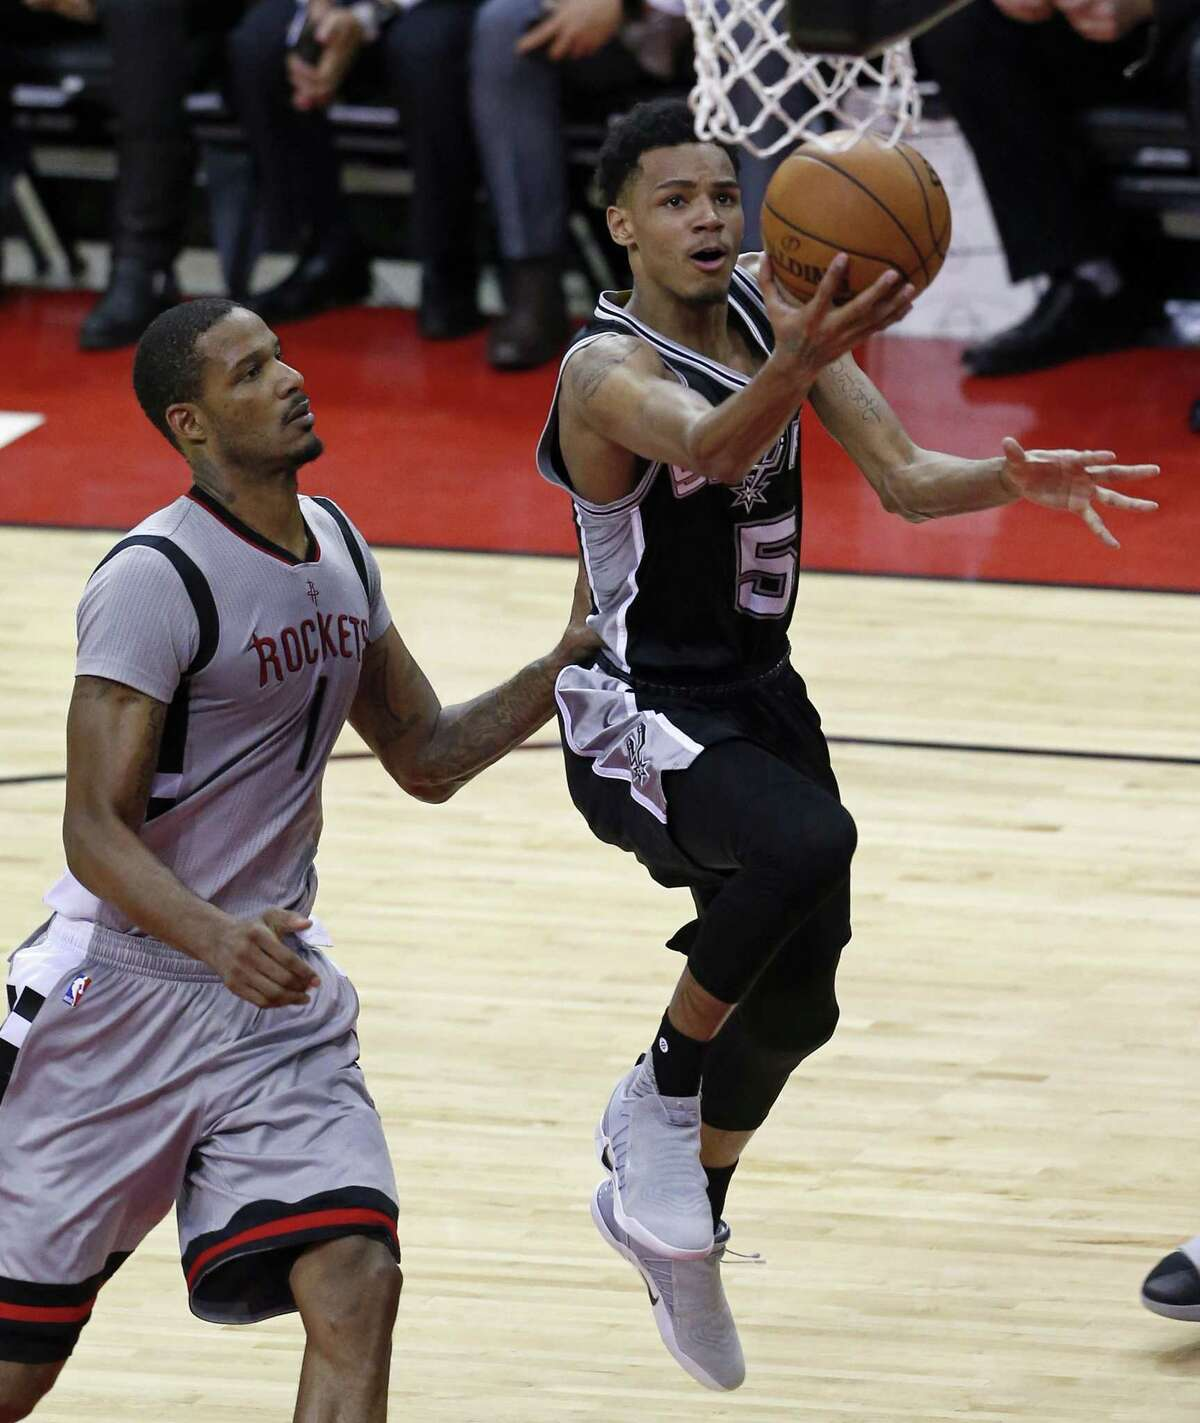 San Antonio Spurs' Dejounte Murray shoots around Houston Rockets?• Trevor Ariza during second half action of Game 6 in the Western Conference semifinals held Thursday May 11, 2017 at the Toyota Center in Houston,Tx. The Spurs won 114-75.